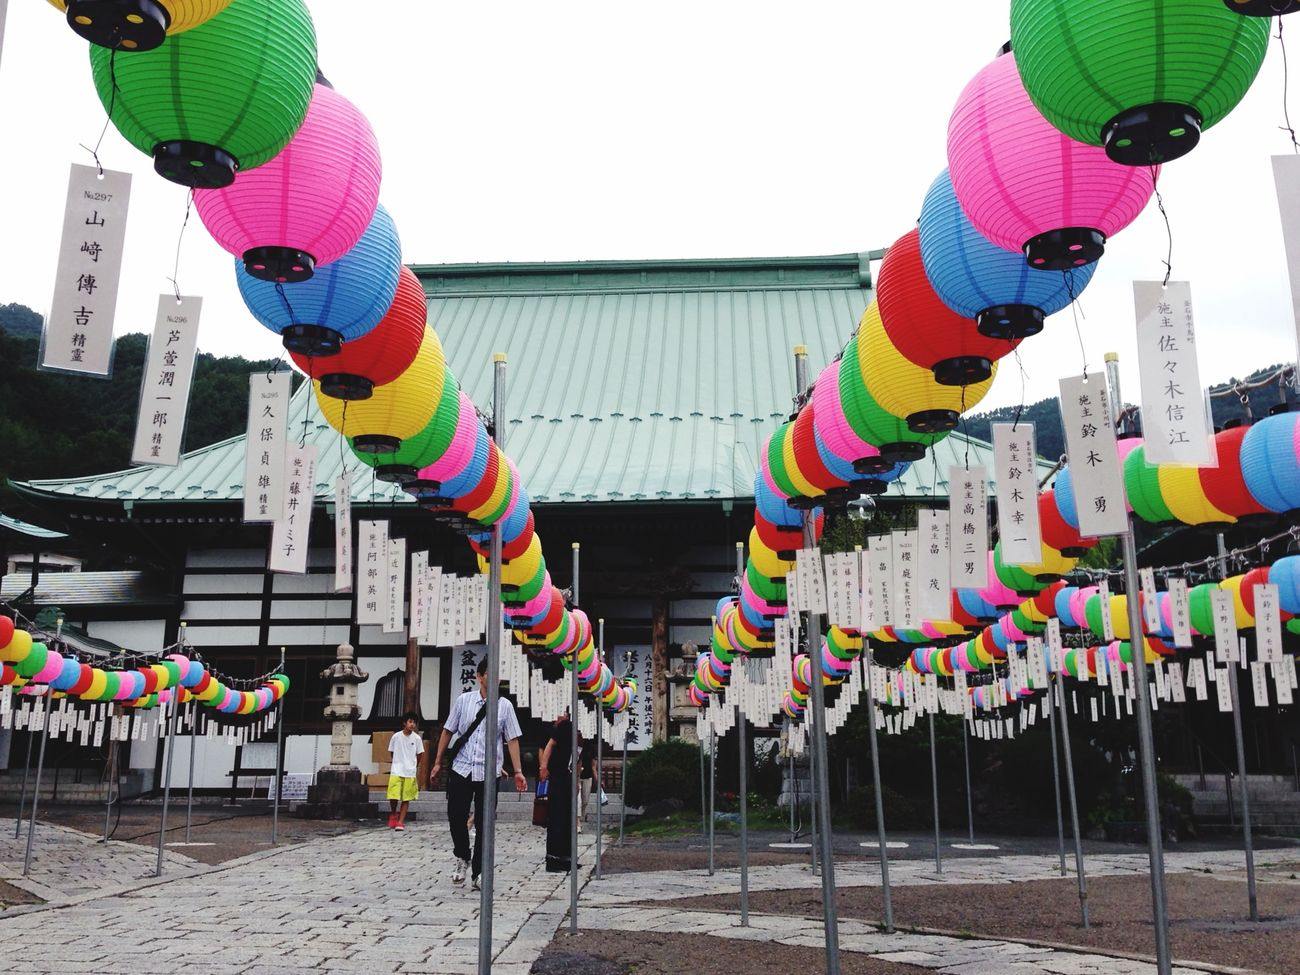 釜石 Kamaishi Lantern Japan Tohoku Colors Colorful Japanese Culture Traveling Discover Your City